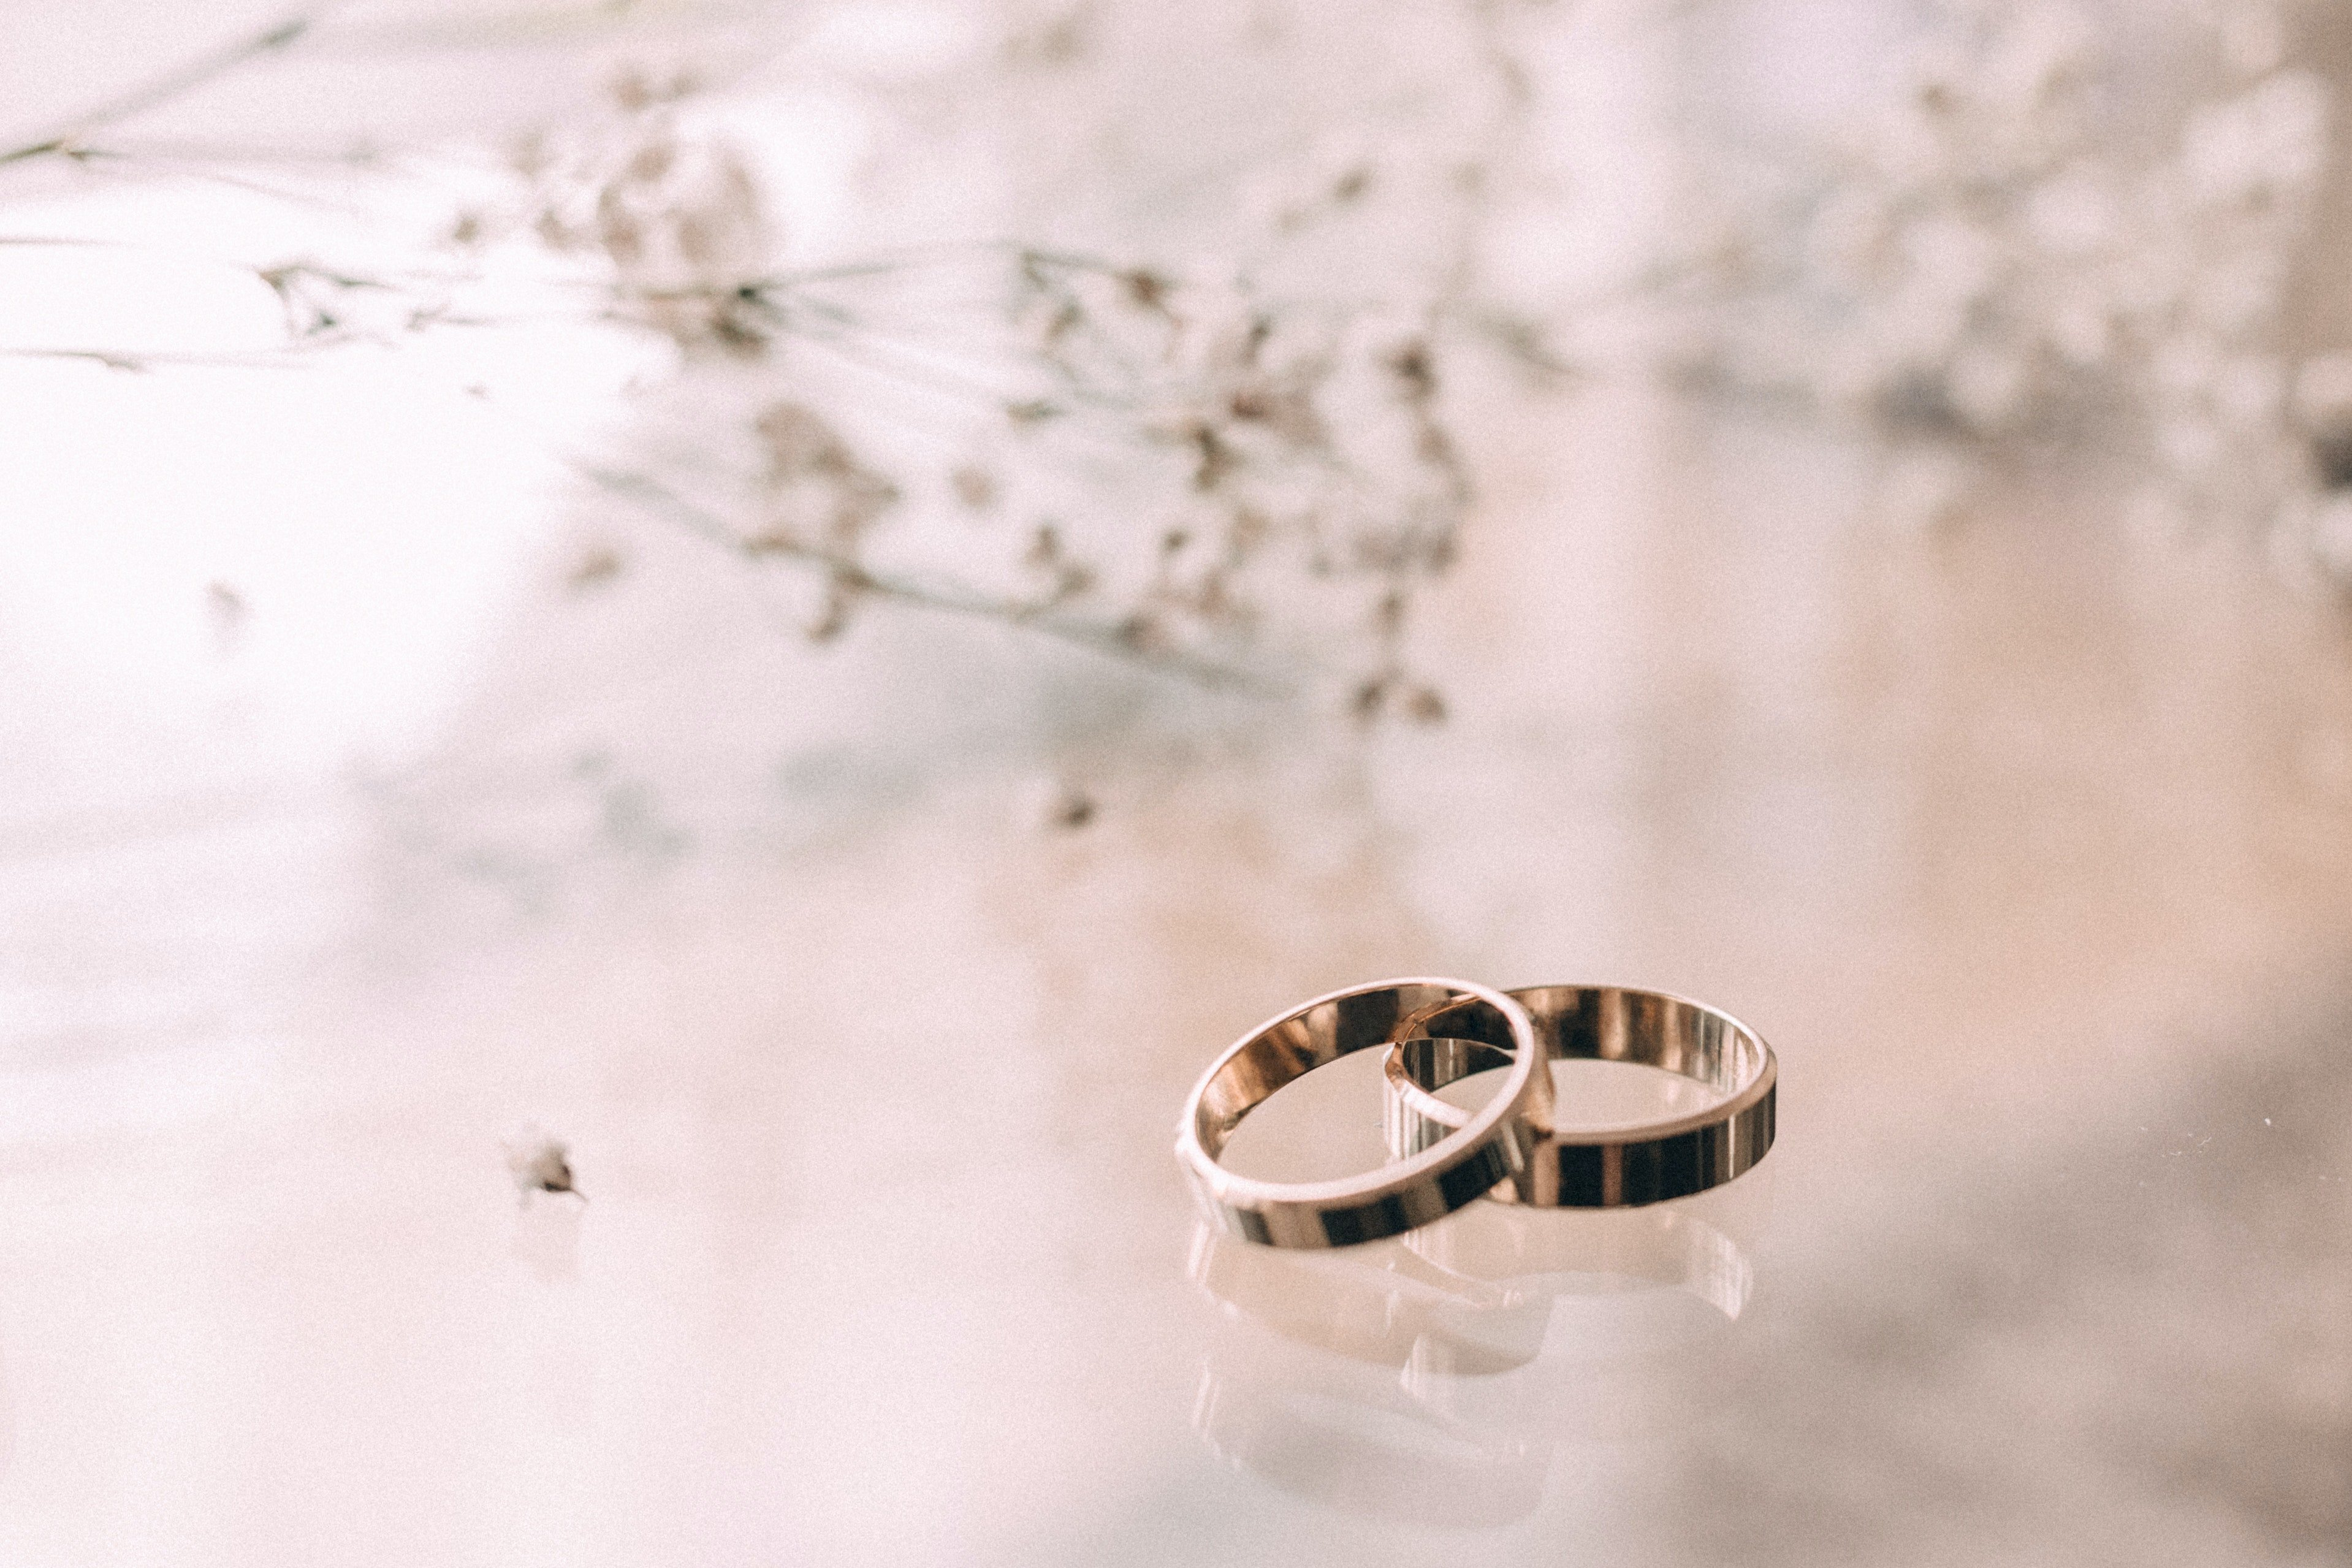 Two silver colored rings | Photo: Pexels